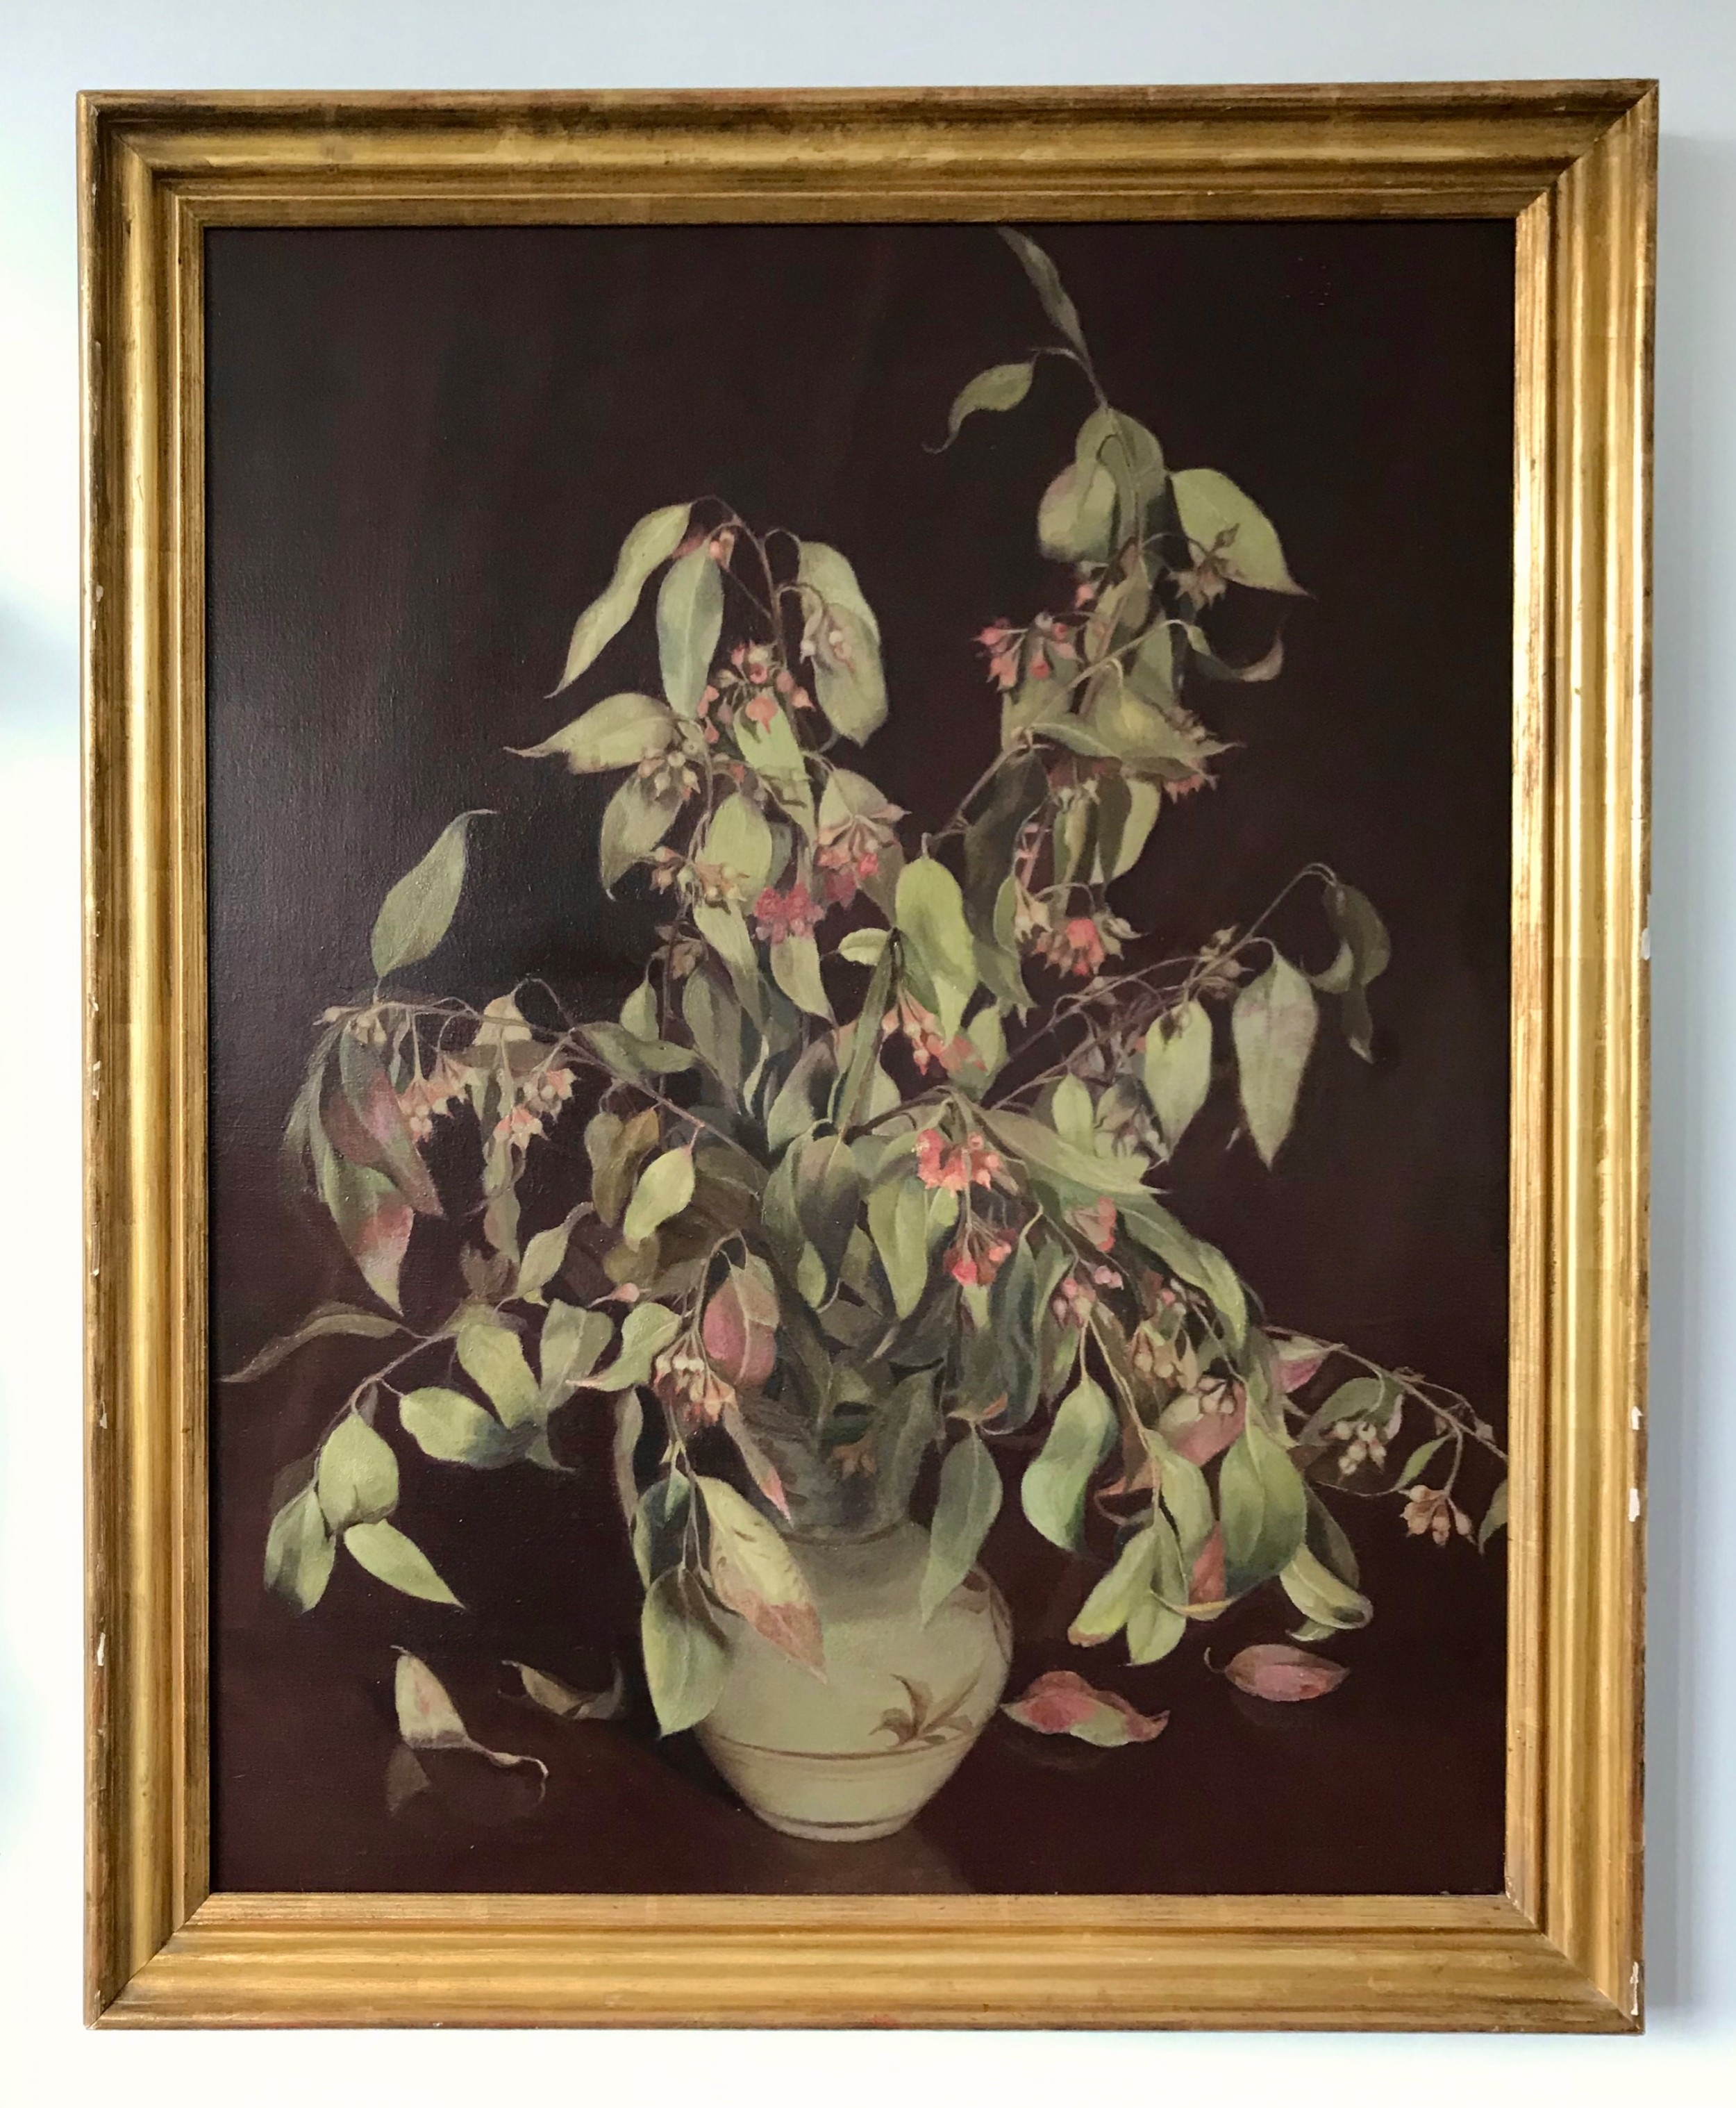 a large still life painting of eucalyptus by lilian jelly aka lady 'jane' kelly gerald kellys wife exsir gerald kelly collection modern british art by rare female artist 1950s